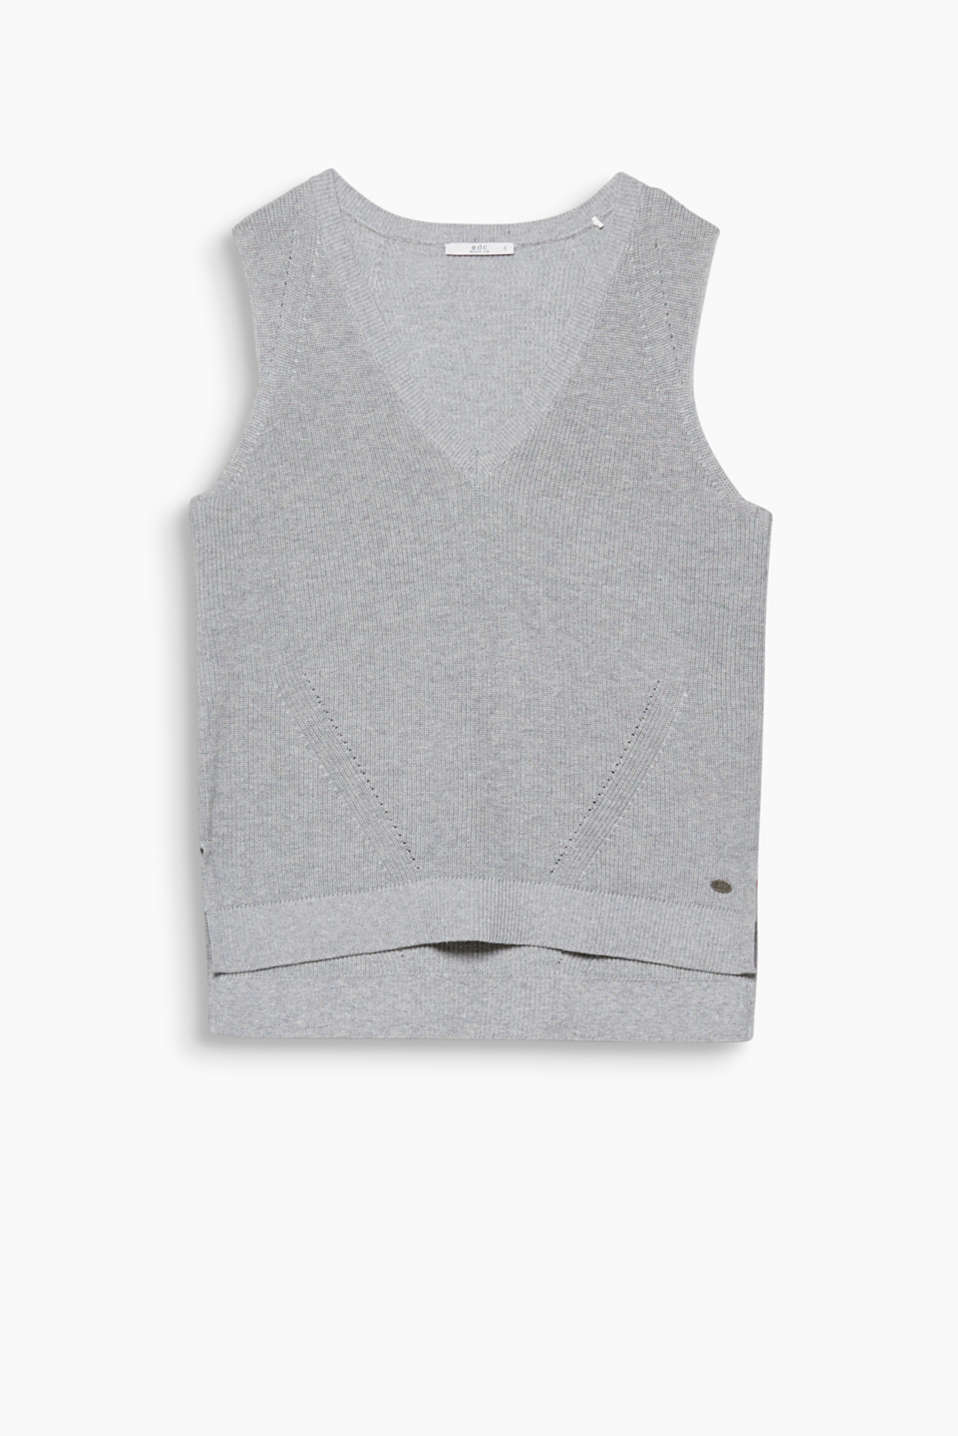 Trend piece: this tank top with a generous V-neckline and textured details is the piece missing from your look!